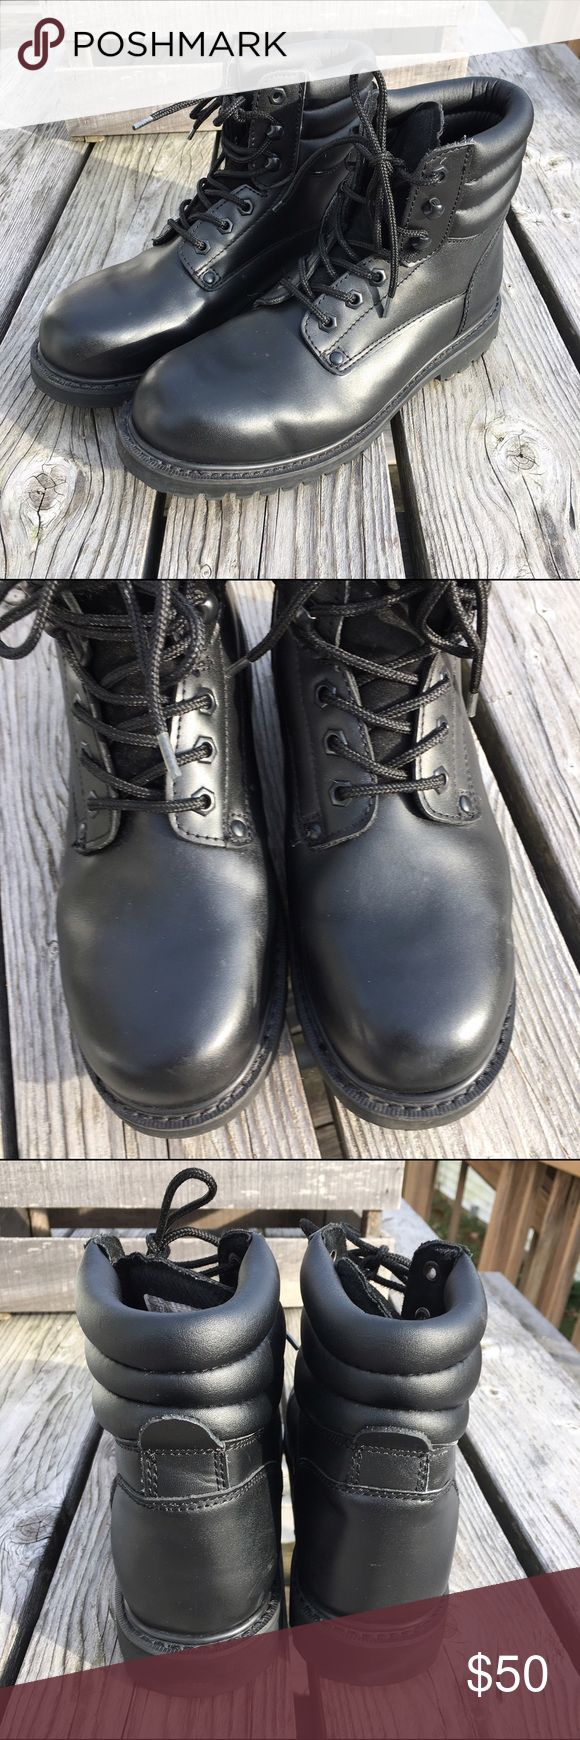 🆕List! Sears Work Boots! Perfect Condition!! Black work boots from Sears! Practically perfect! NOT steal toe. Size 10 men's. Sears Shoes Boots